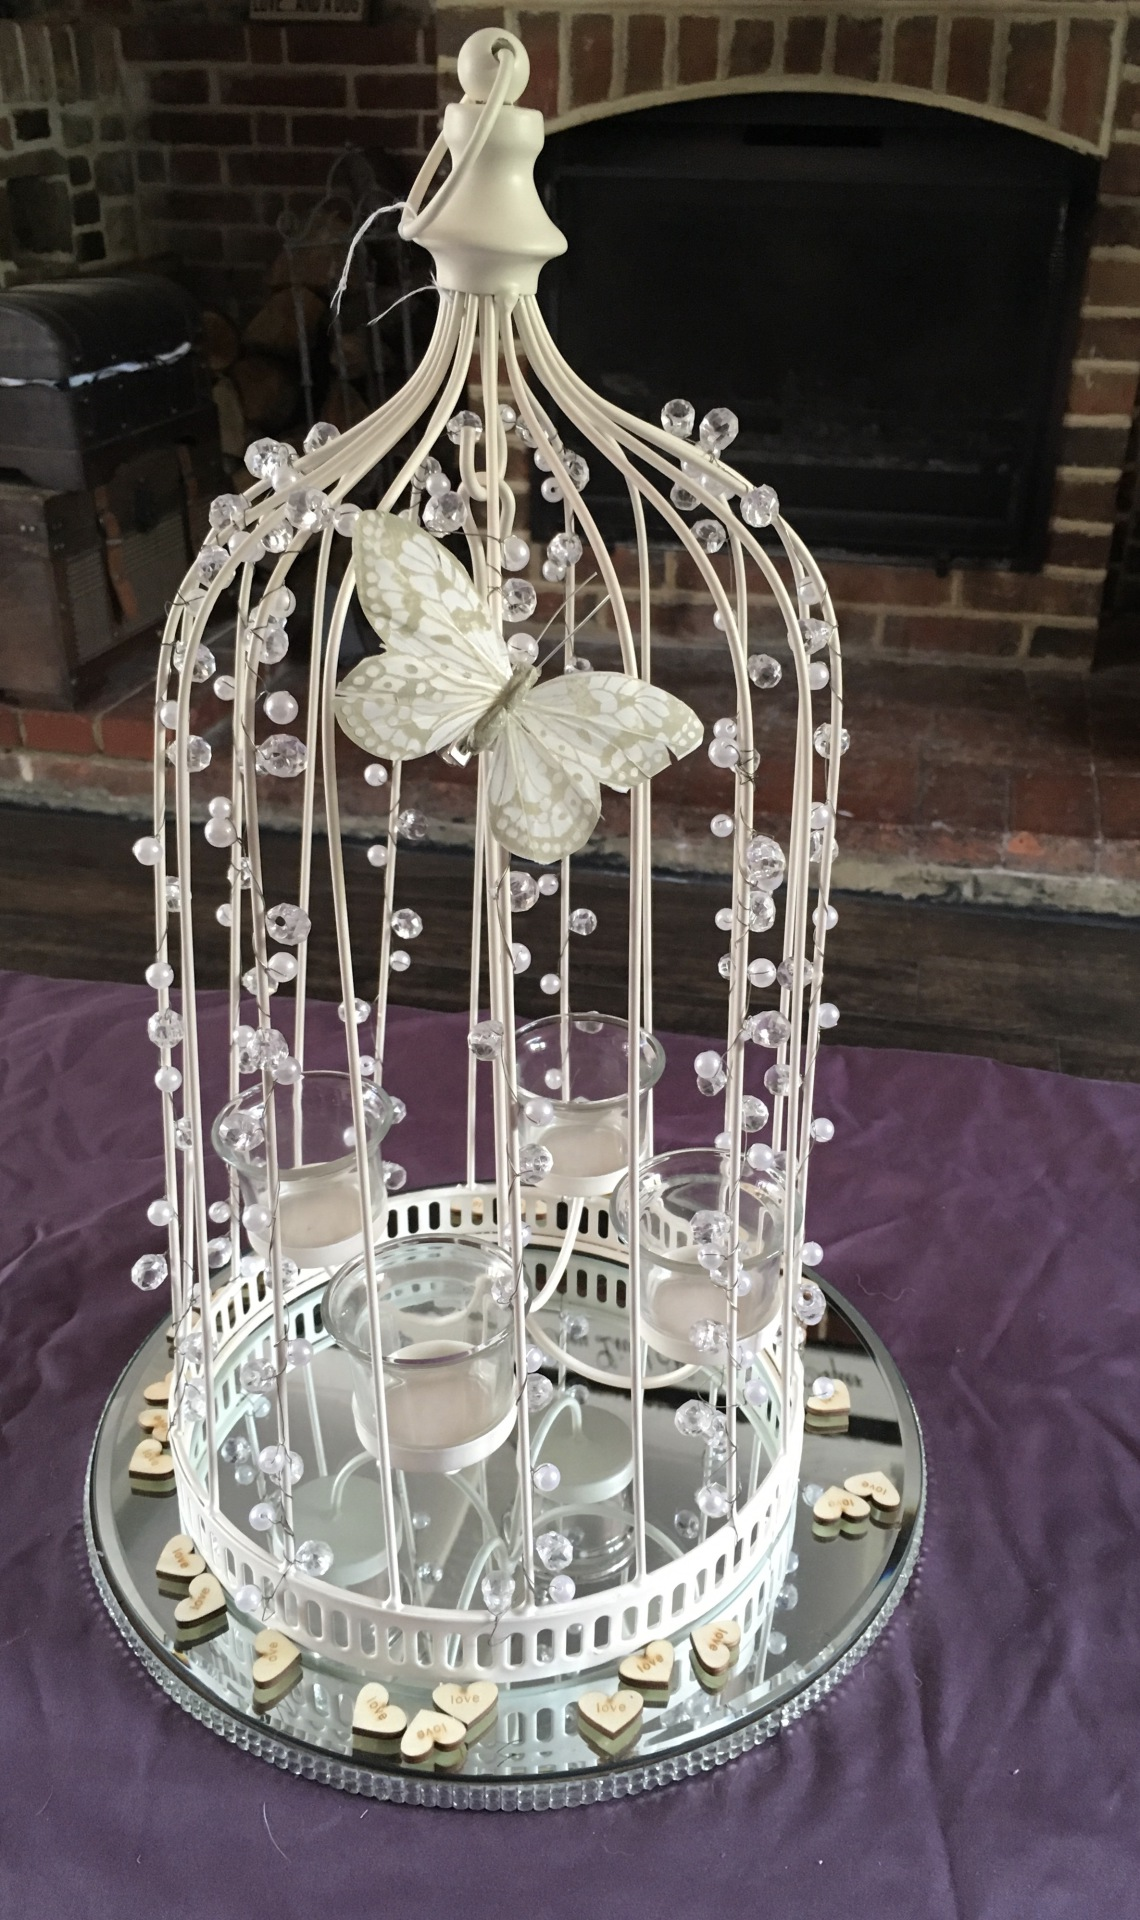 Beaded bird cage supplied with mirrored plate, led tea lights & butterfly decor